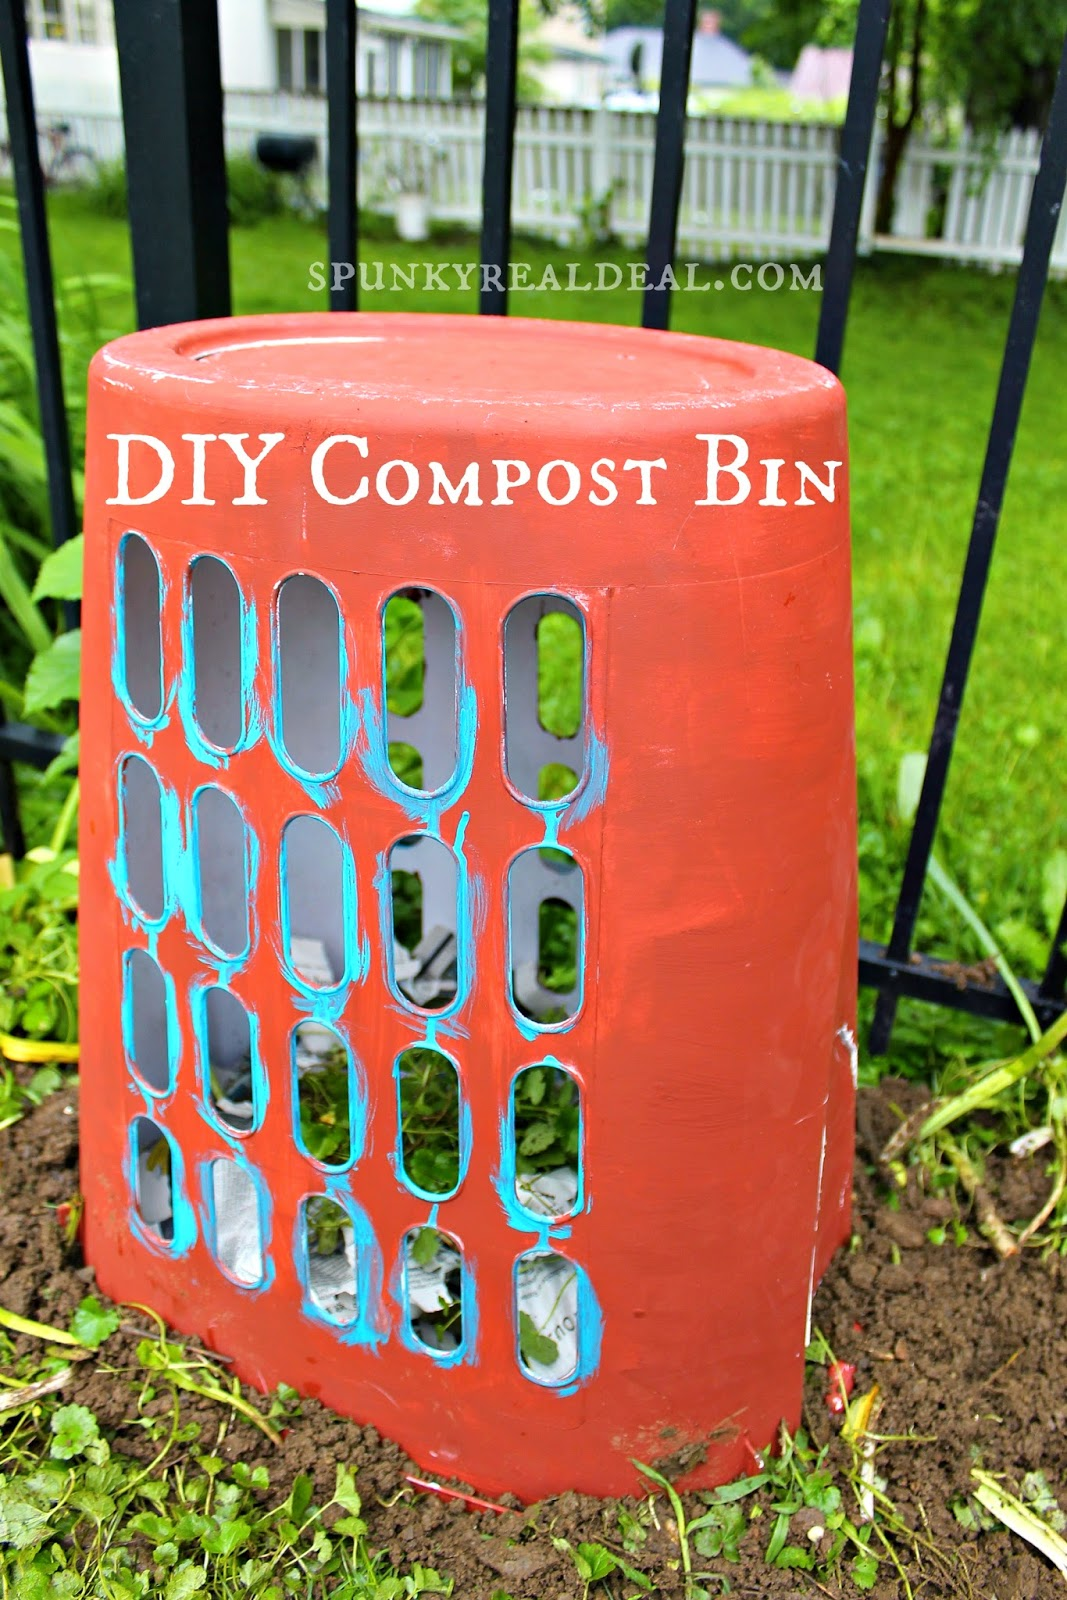 Making a compost pile - A Compost Pile Is Something I Tried My Hand At Once Before I Decided That I Did Not Need To Spend The Money On A Compost Bin So I Just Started A